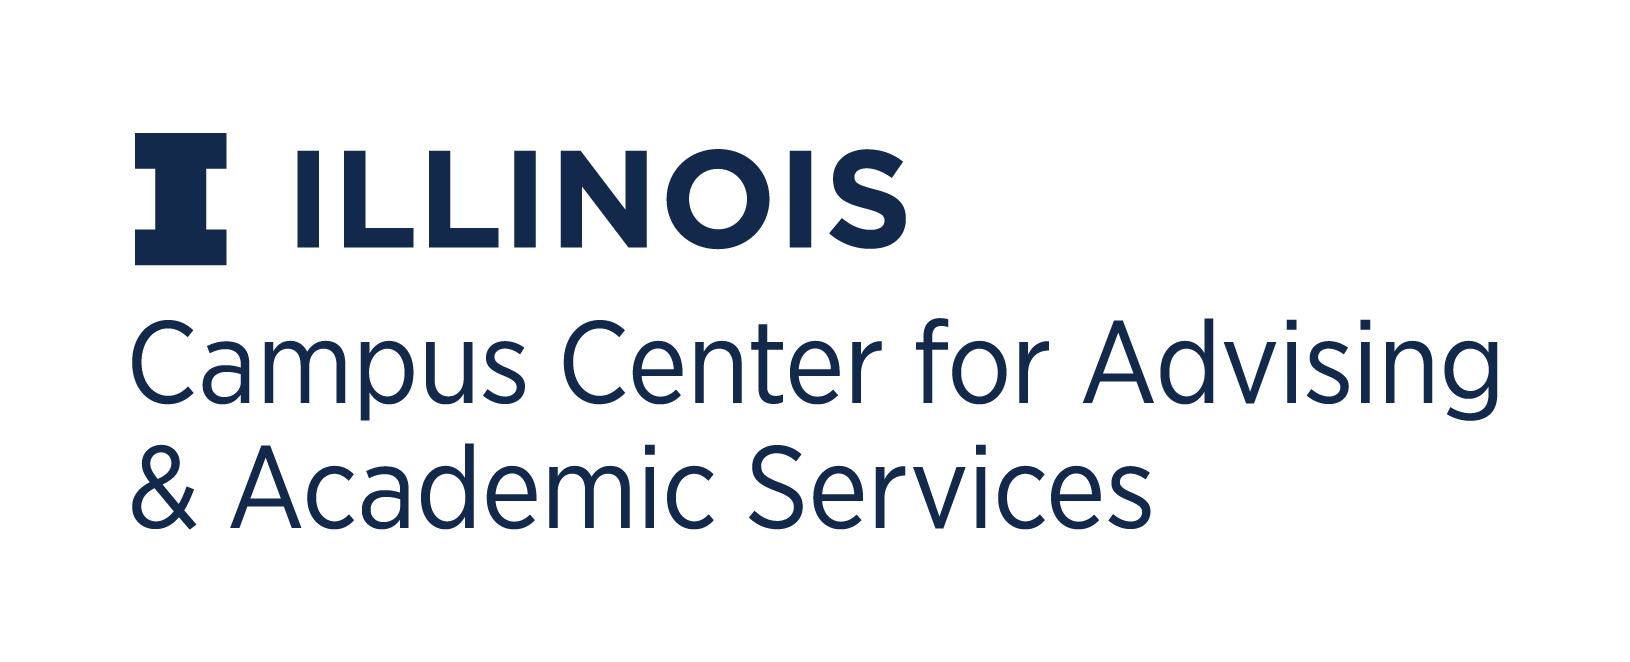 Illinois Campus Center for Advising and Academic Services